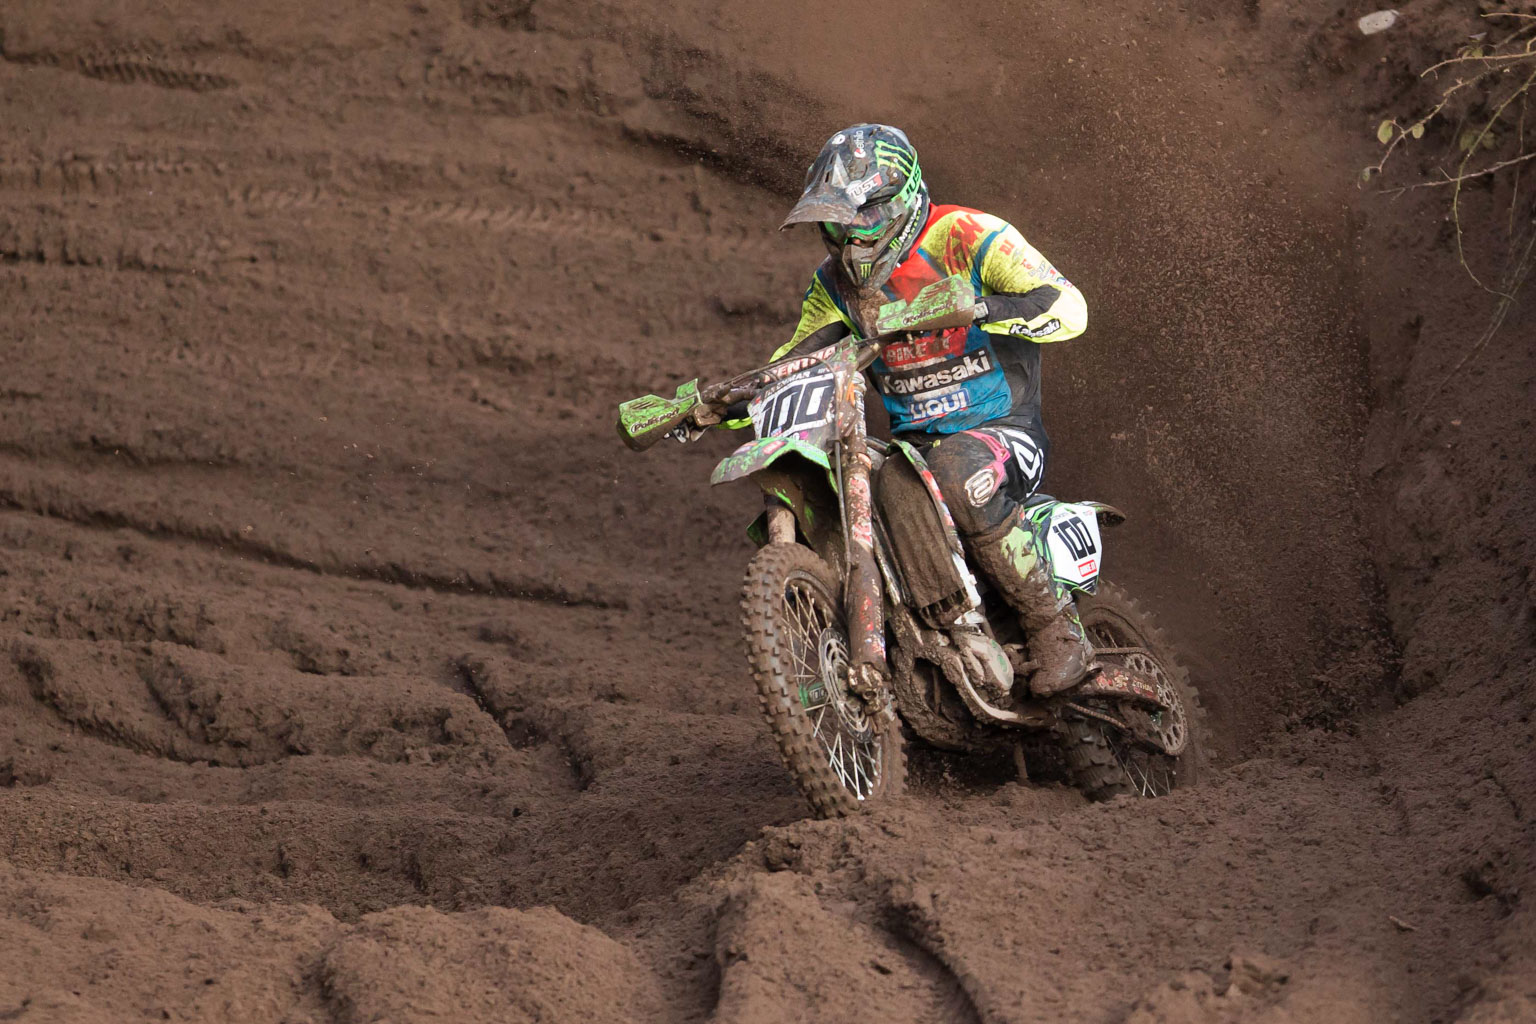 Tommy Searle is looking fit and fast, and got stronger as the event went on